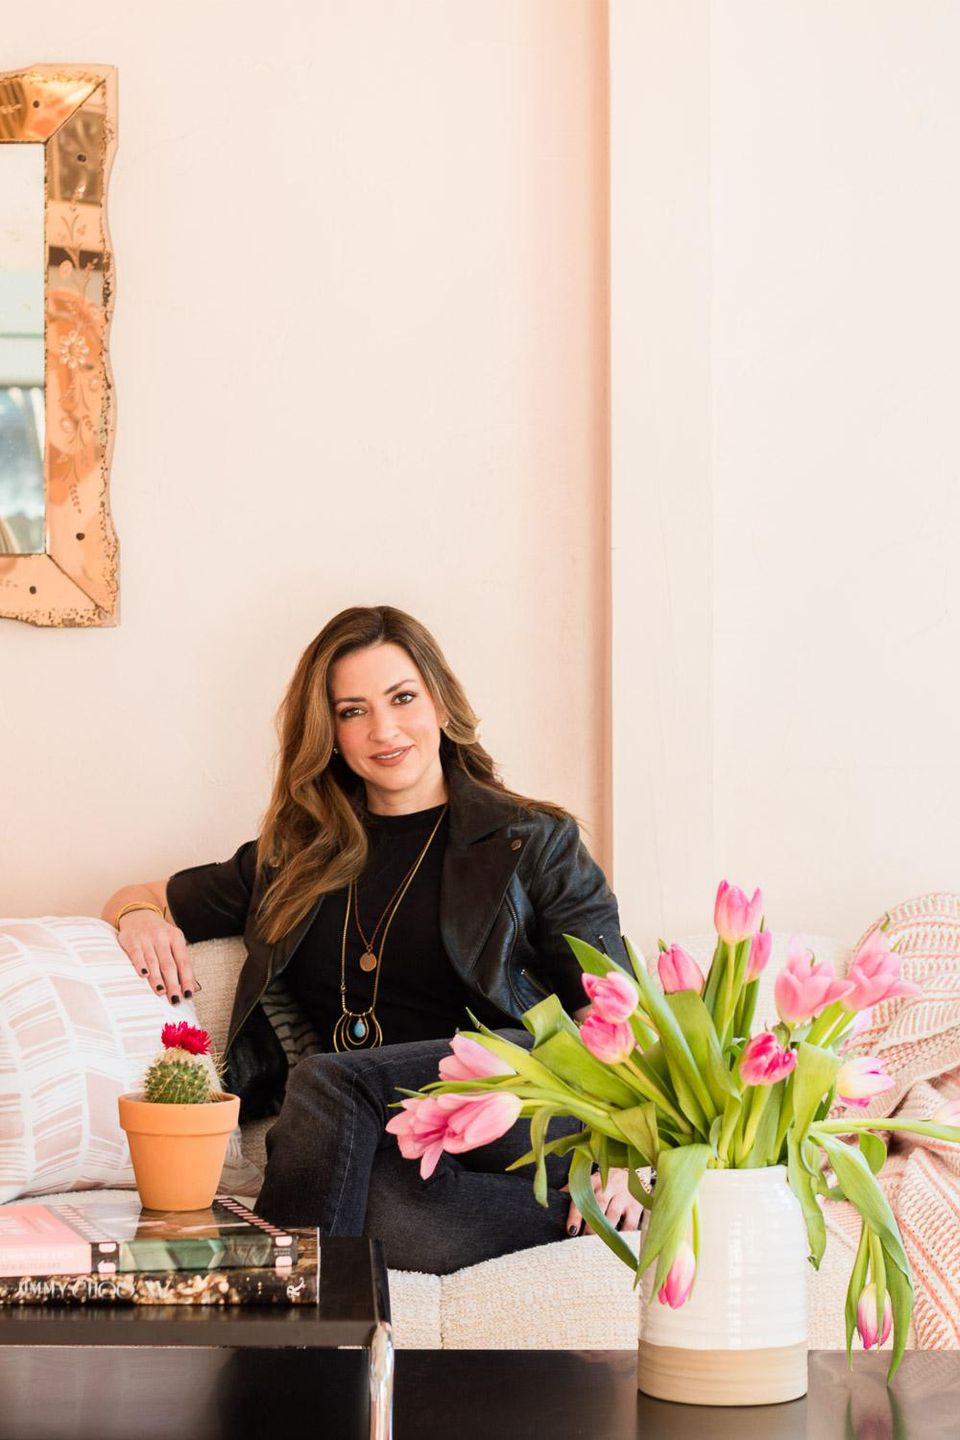 is the founder of hotelette the next generation of boutique hoteliers? - forbes, 2019